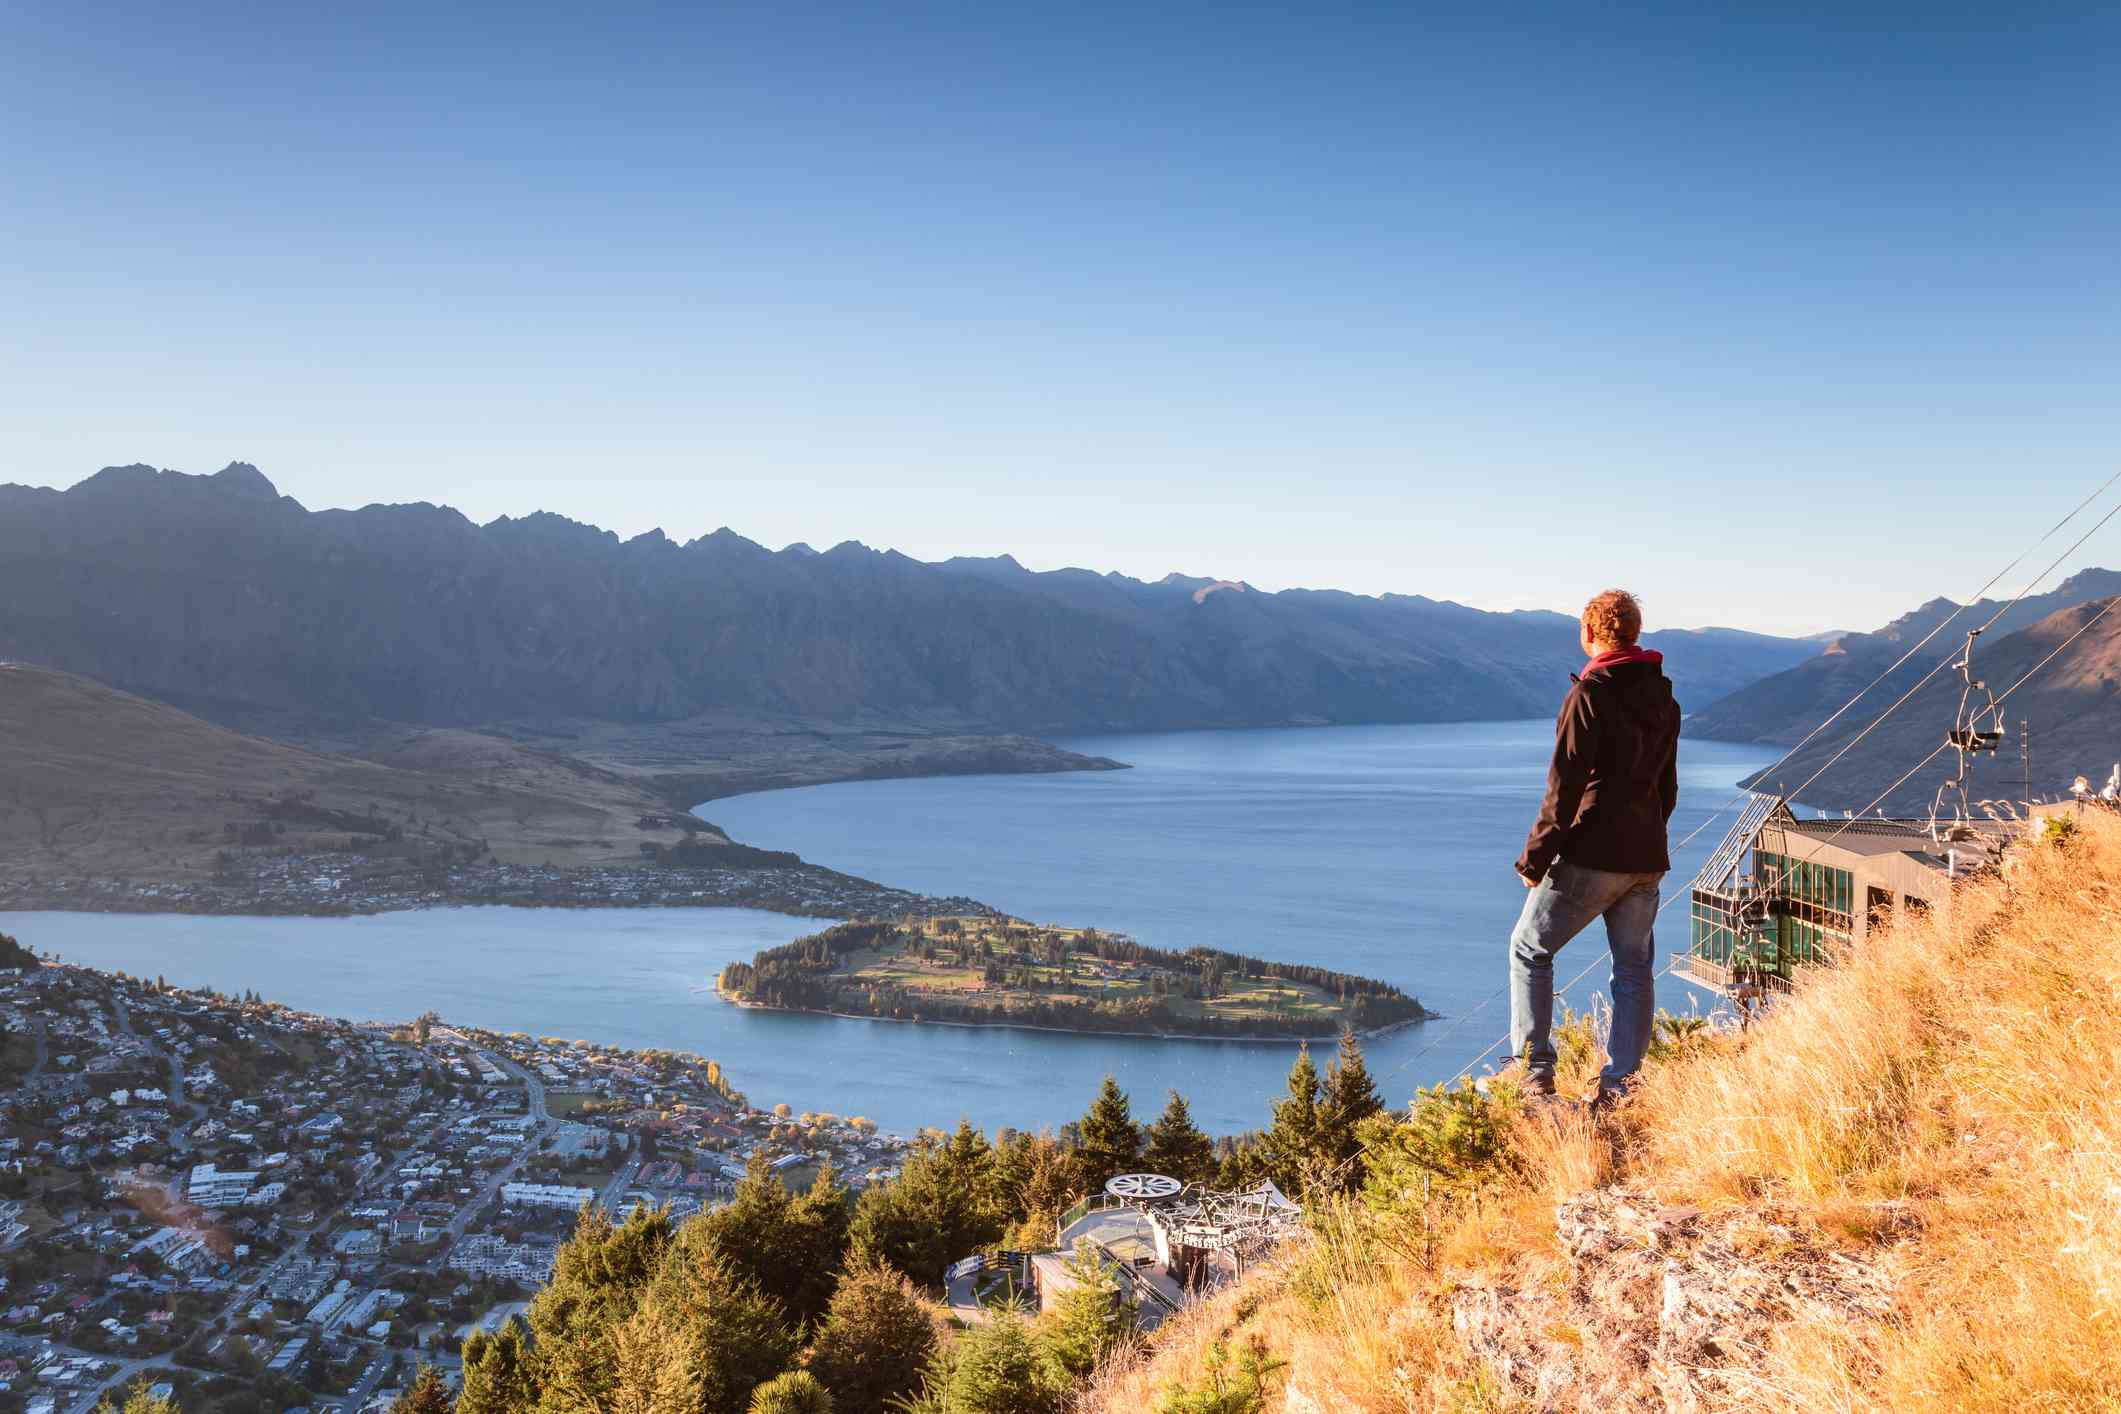 man on grassy ledge high on a hill overlooking a town, lake and mountains